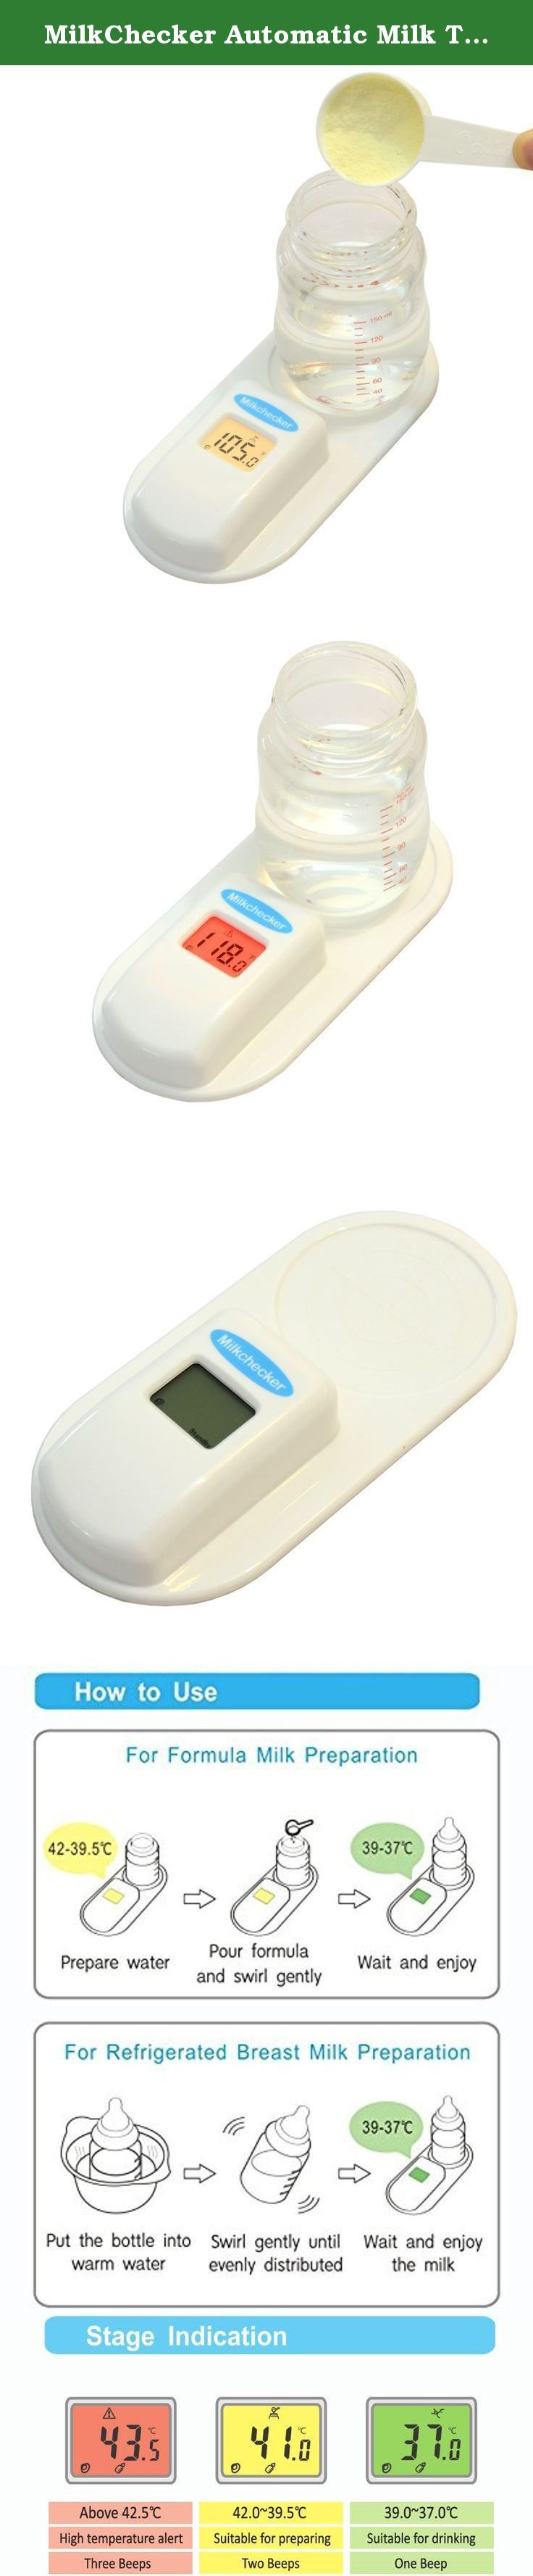 MilkChecker Automatic Milk Temperature Monitor Ideal for Measuring Breast Milk & Formula Milk Temperature with Non-Contact Infrared Thermometer for Accurate Temperature Reading for Moms. Milkchecker is specially designed for getting accurate feeding bottle temperature measurements while preparing formula or warming refrigerated breast milk for infants. It prevents low and high temperature milk when feeding babies. Operating the Milkchecker is simple. For formula milk put warm milk in a...